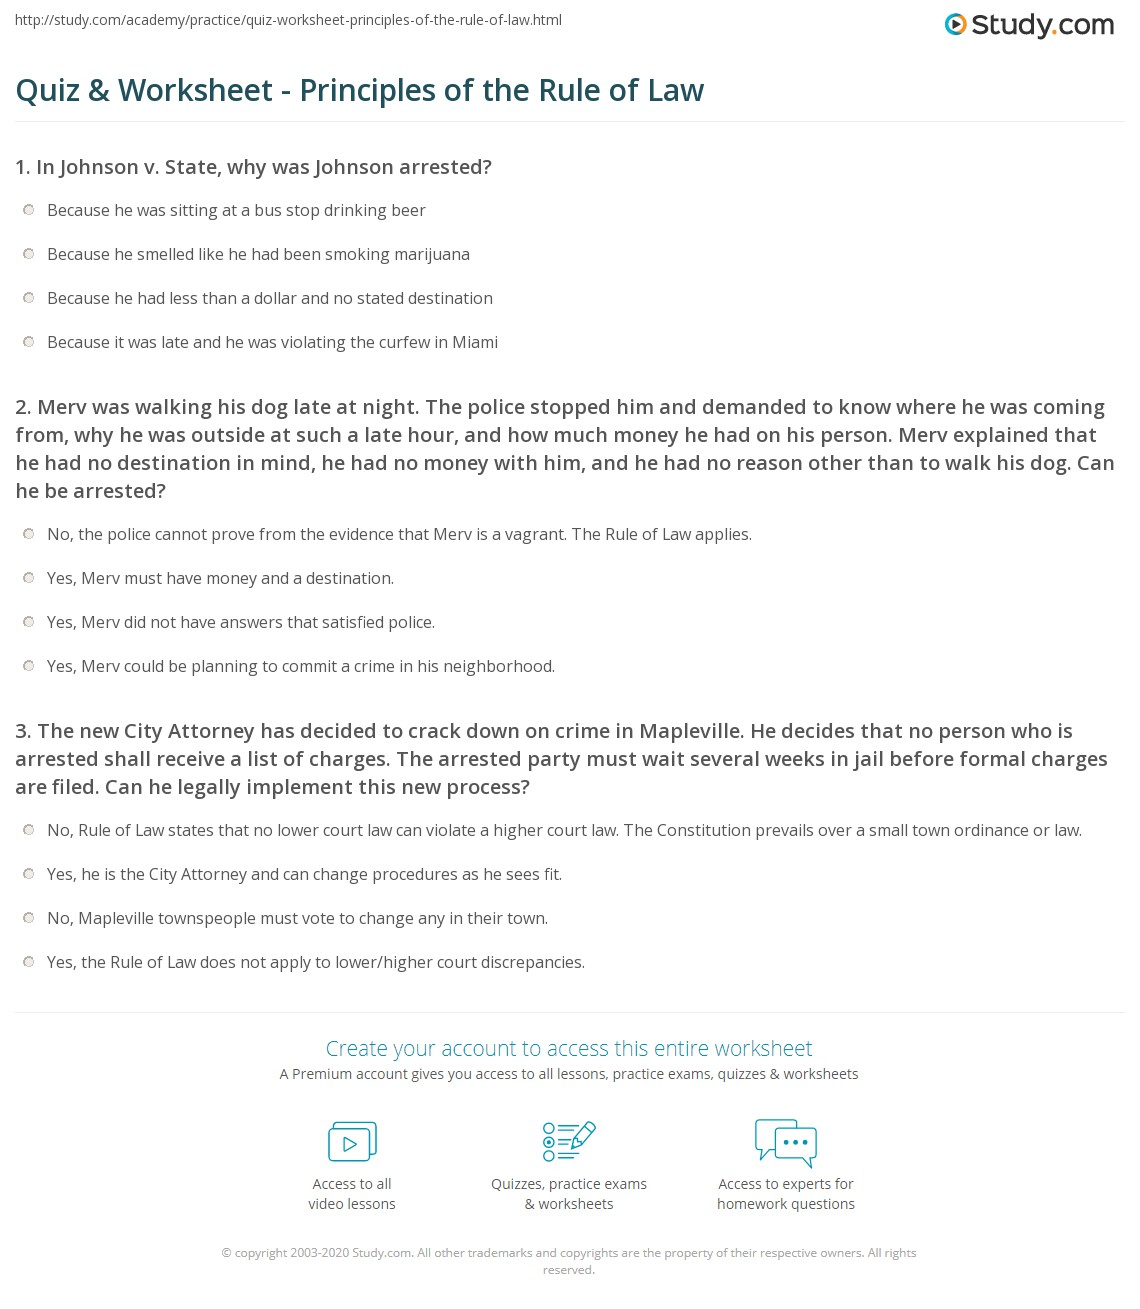 Printables Criminal Law Worksheets quiz worksheet principles of the rule law study com 1 merv was walking his dog late at night police stopped him and demanded to know where he coming from why outside at